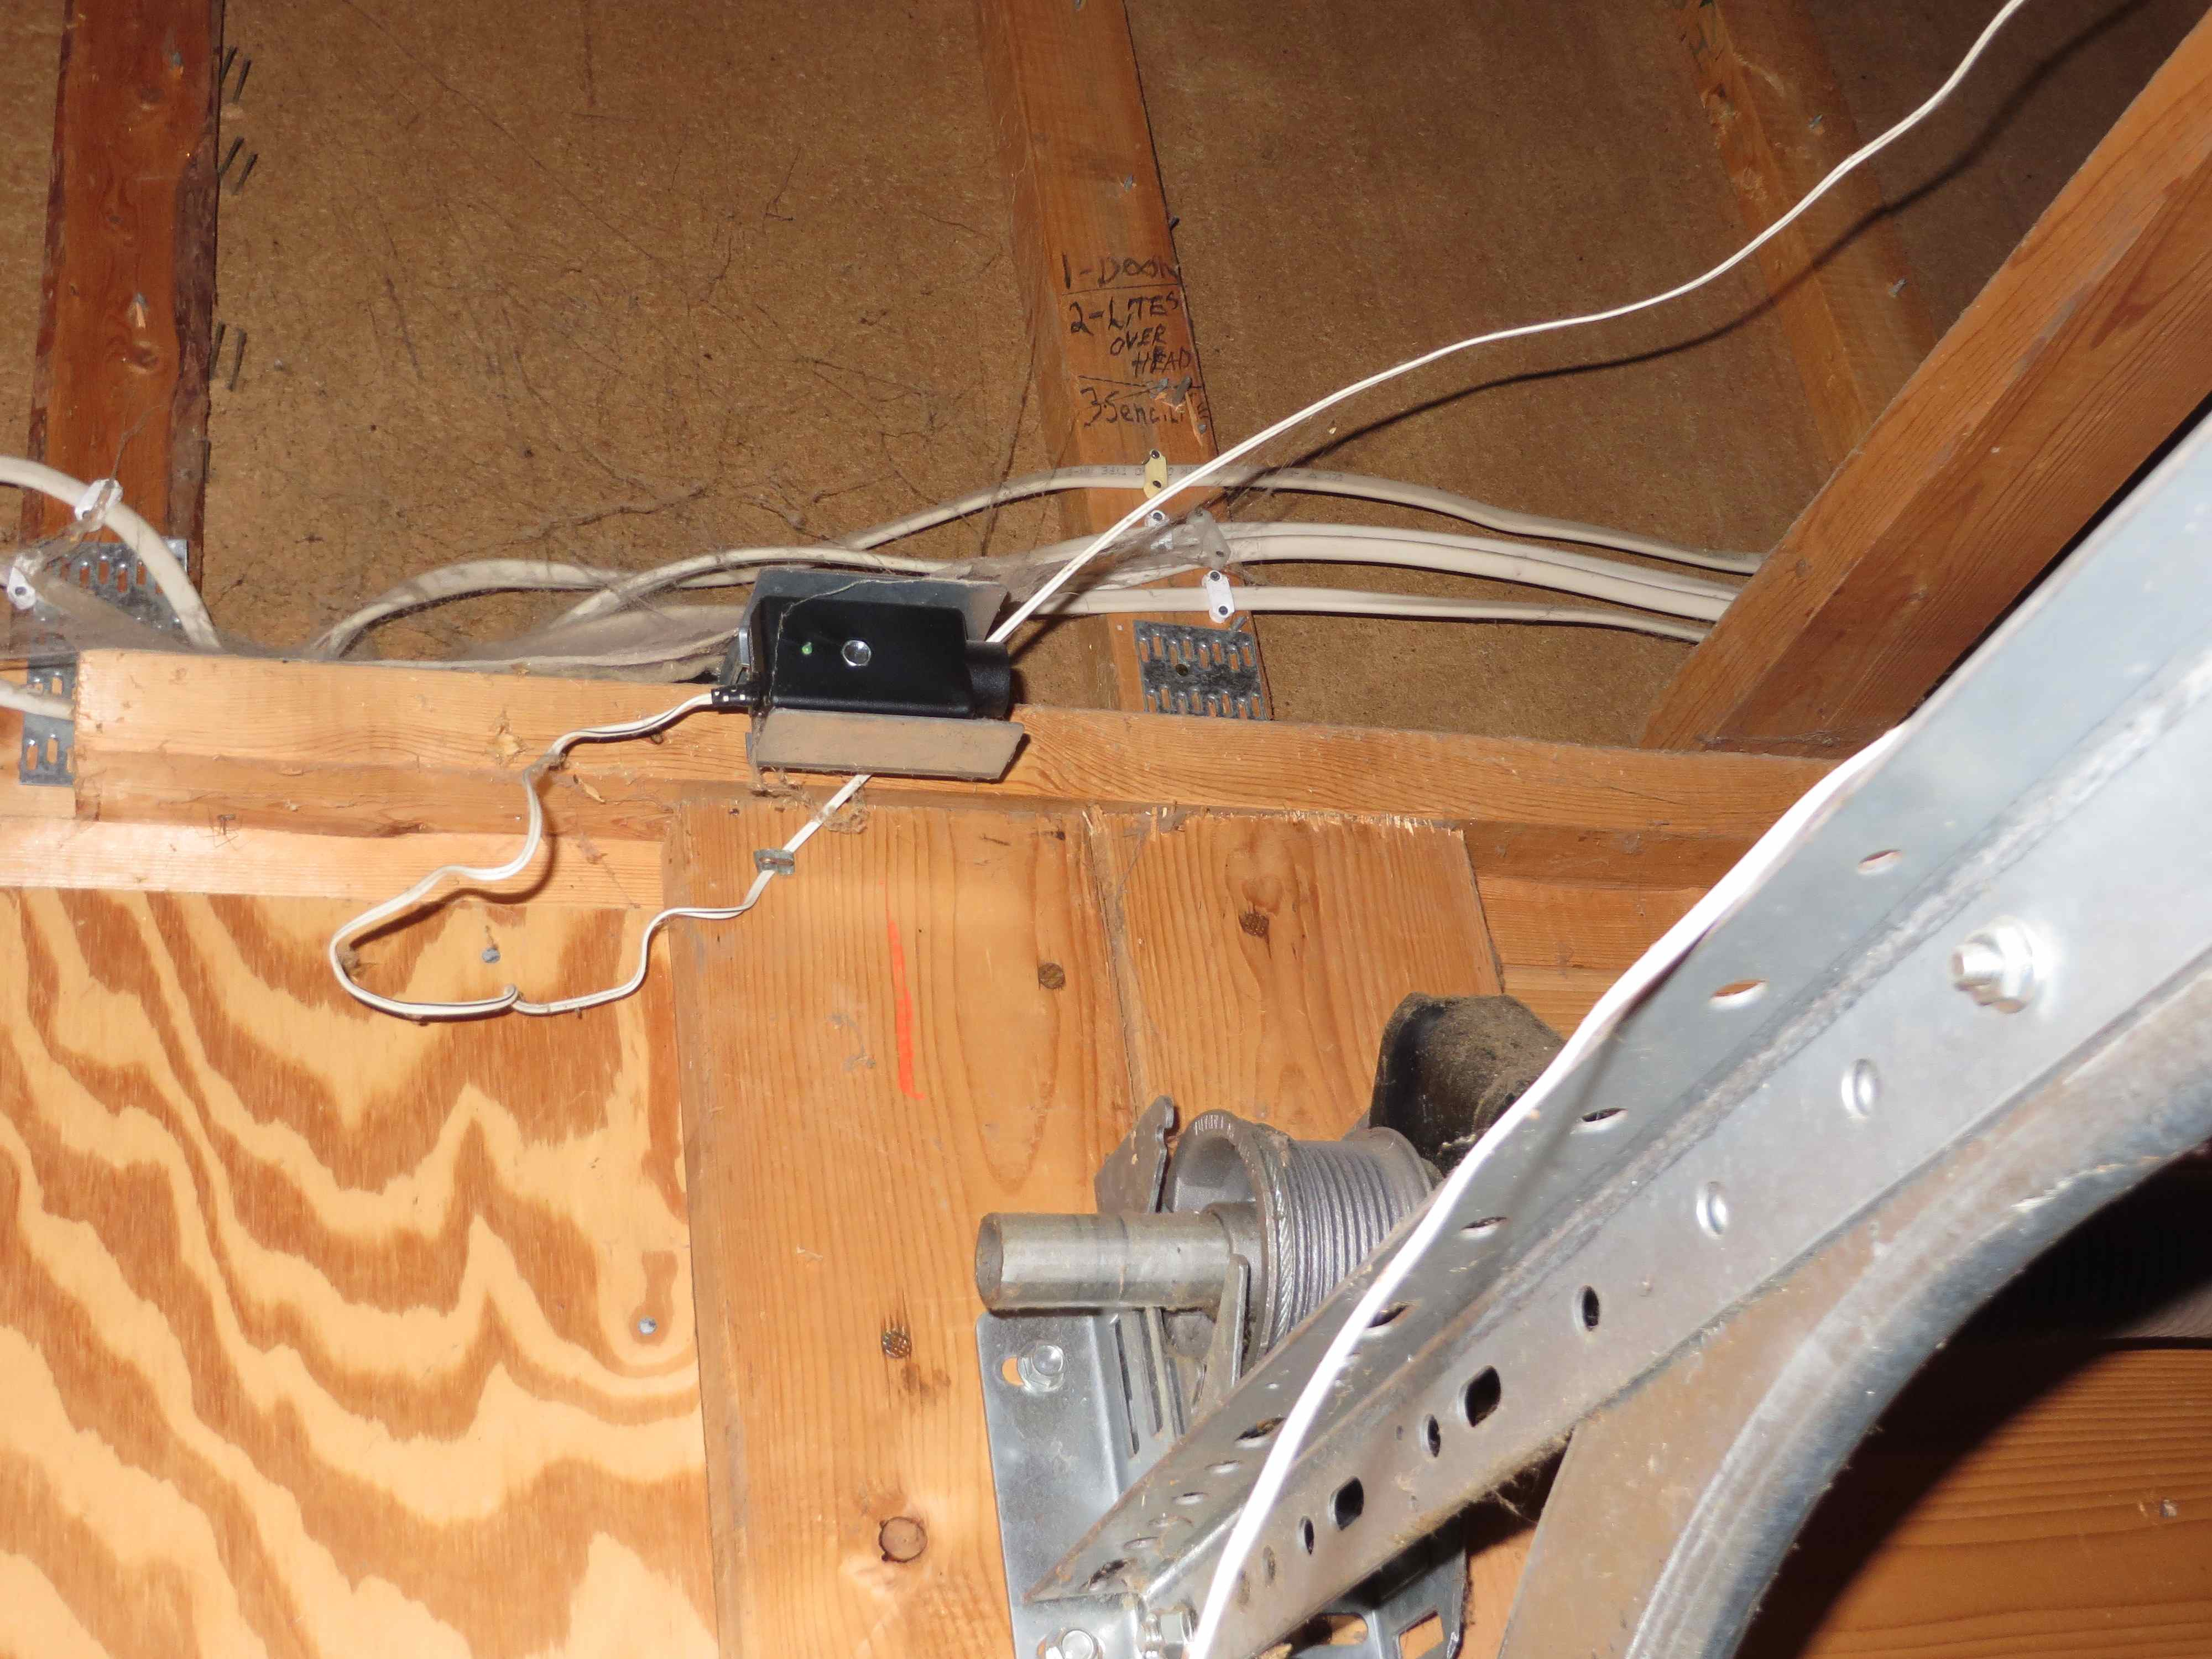 The Most Common Garage Door Opener Issues Basic Wiring To Detached Journal Board Photoelectric Sensors At Ceiling 19